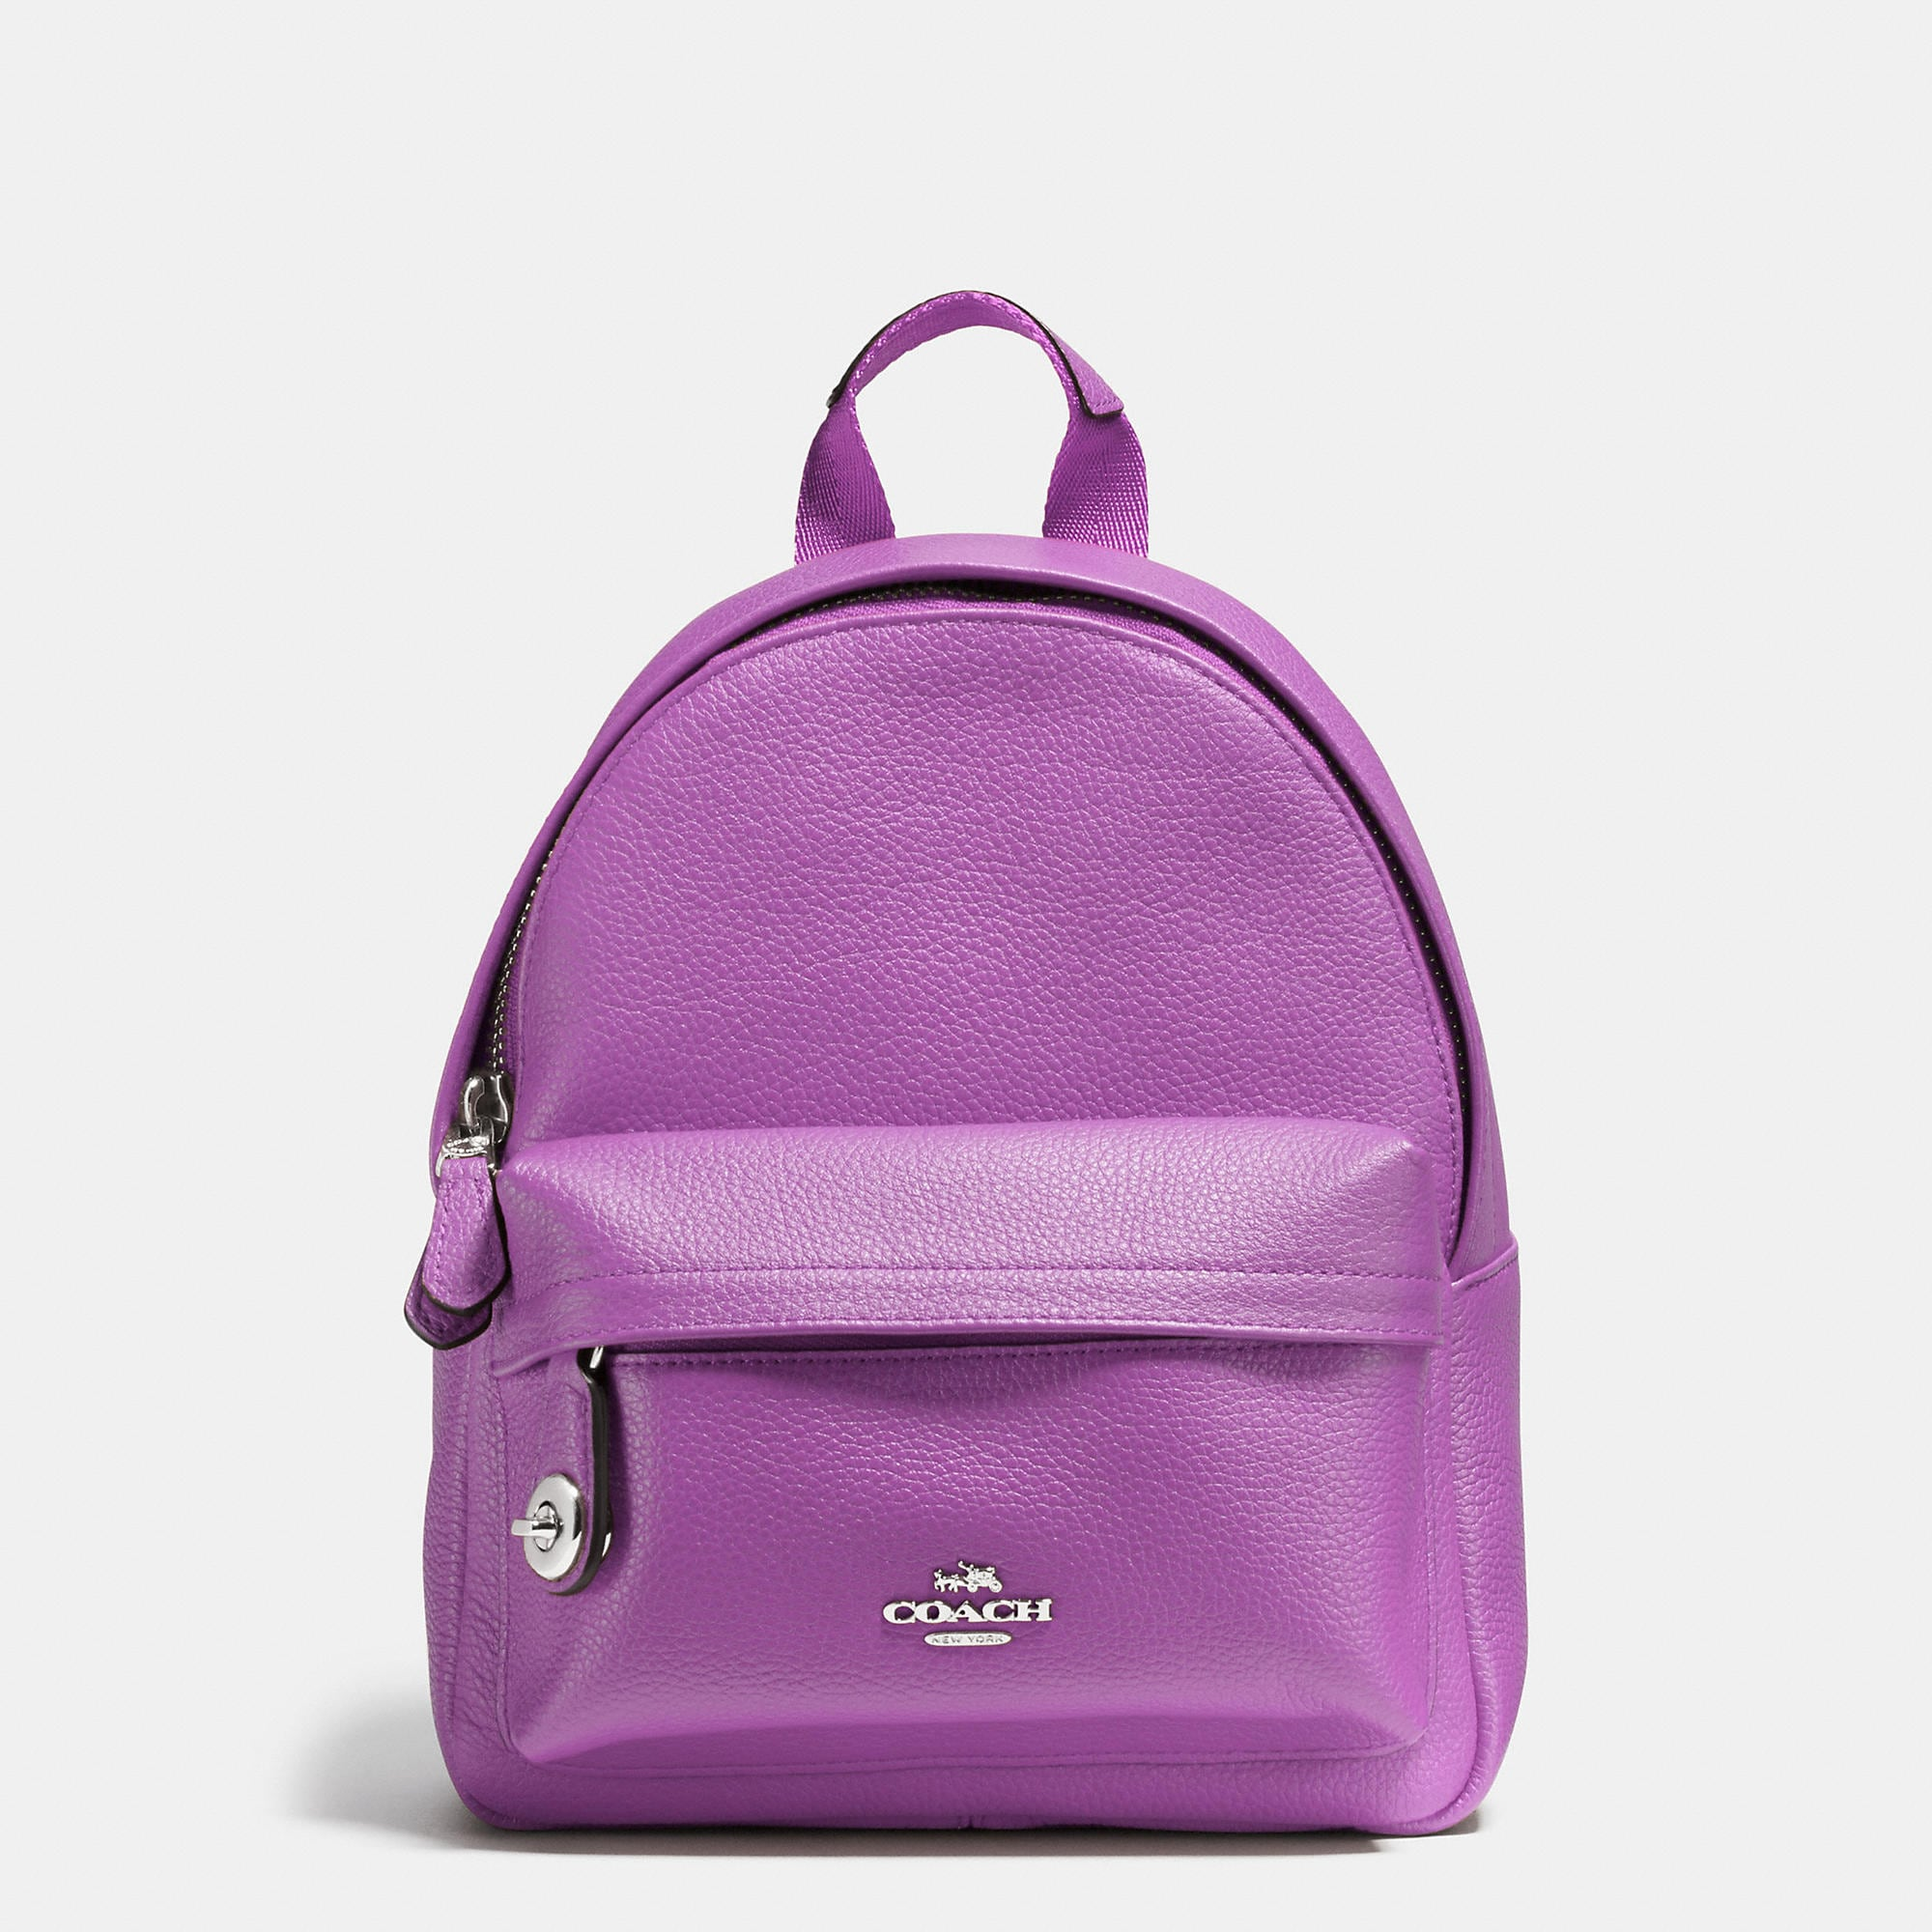 Coach Mini Campus Backpack In Pebble Leather